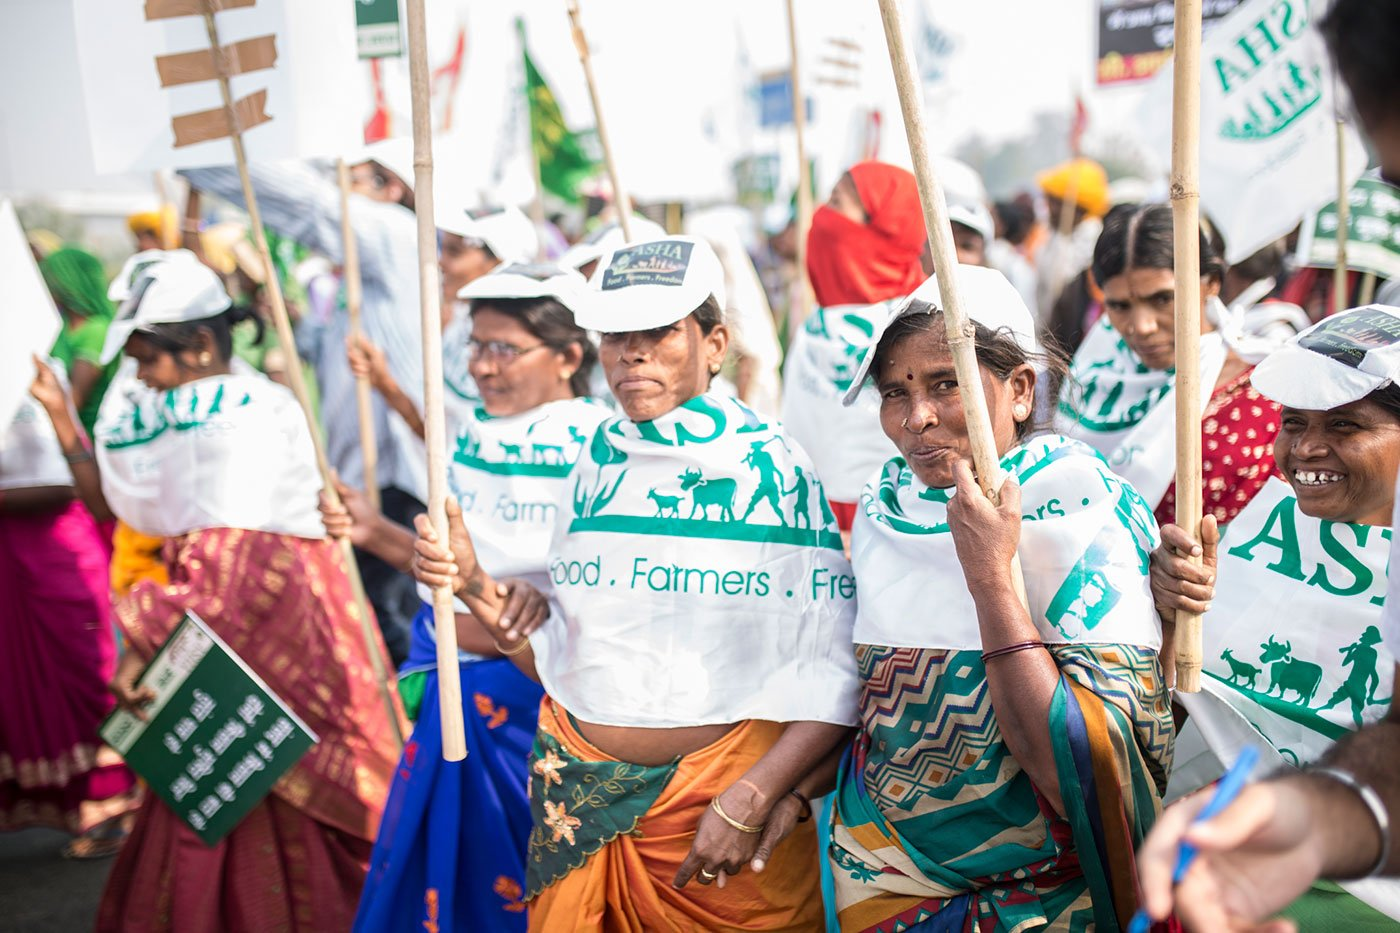 Women farmers fro MP marching from Gurudwara Shri Bala Sahibji to Ramlila